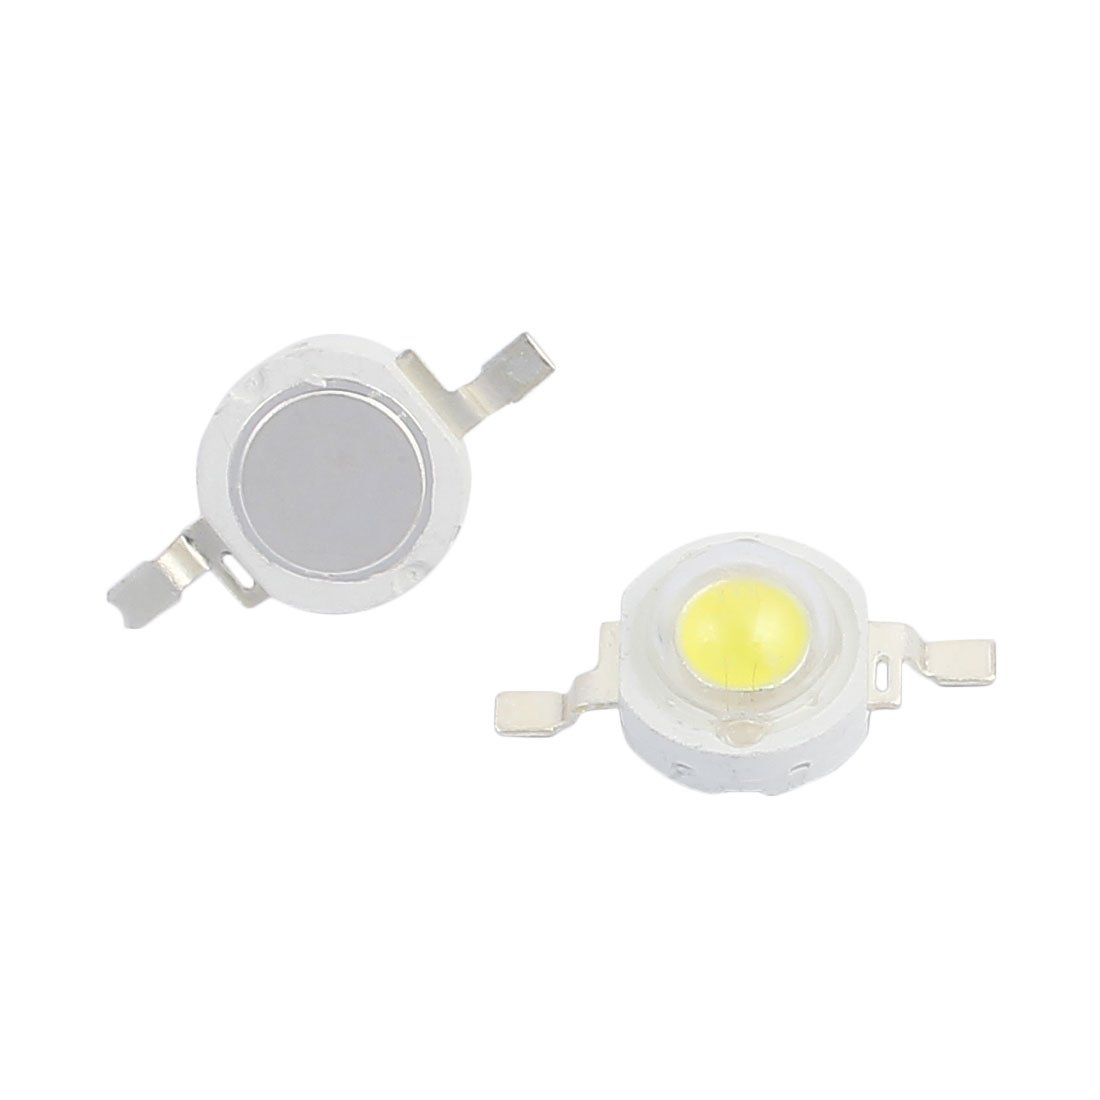 uxcell 15 Pcs DC 3-6V 5W High Power Warm White SMD LED Lamp Bead 475-525LM 3000K